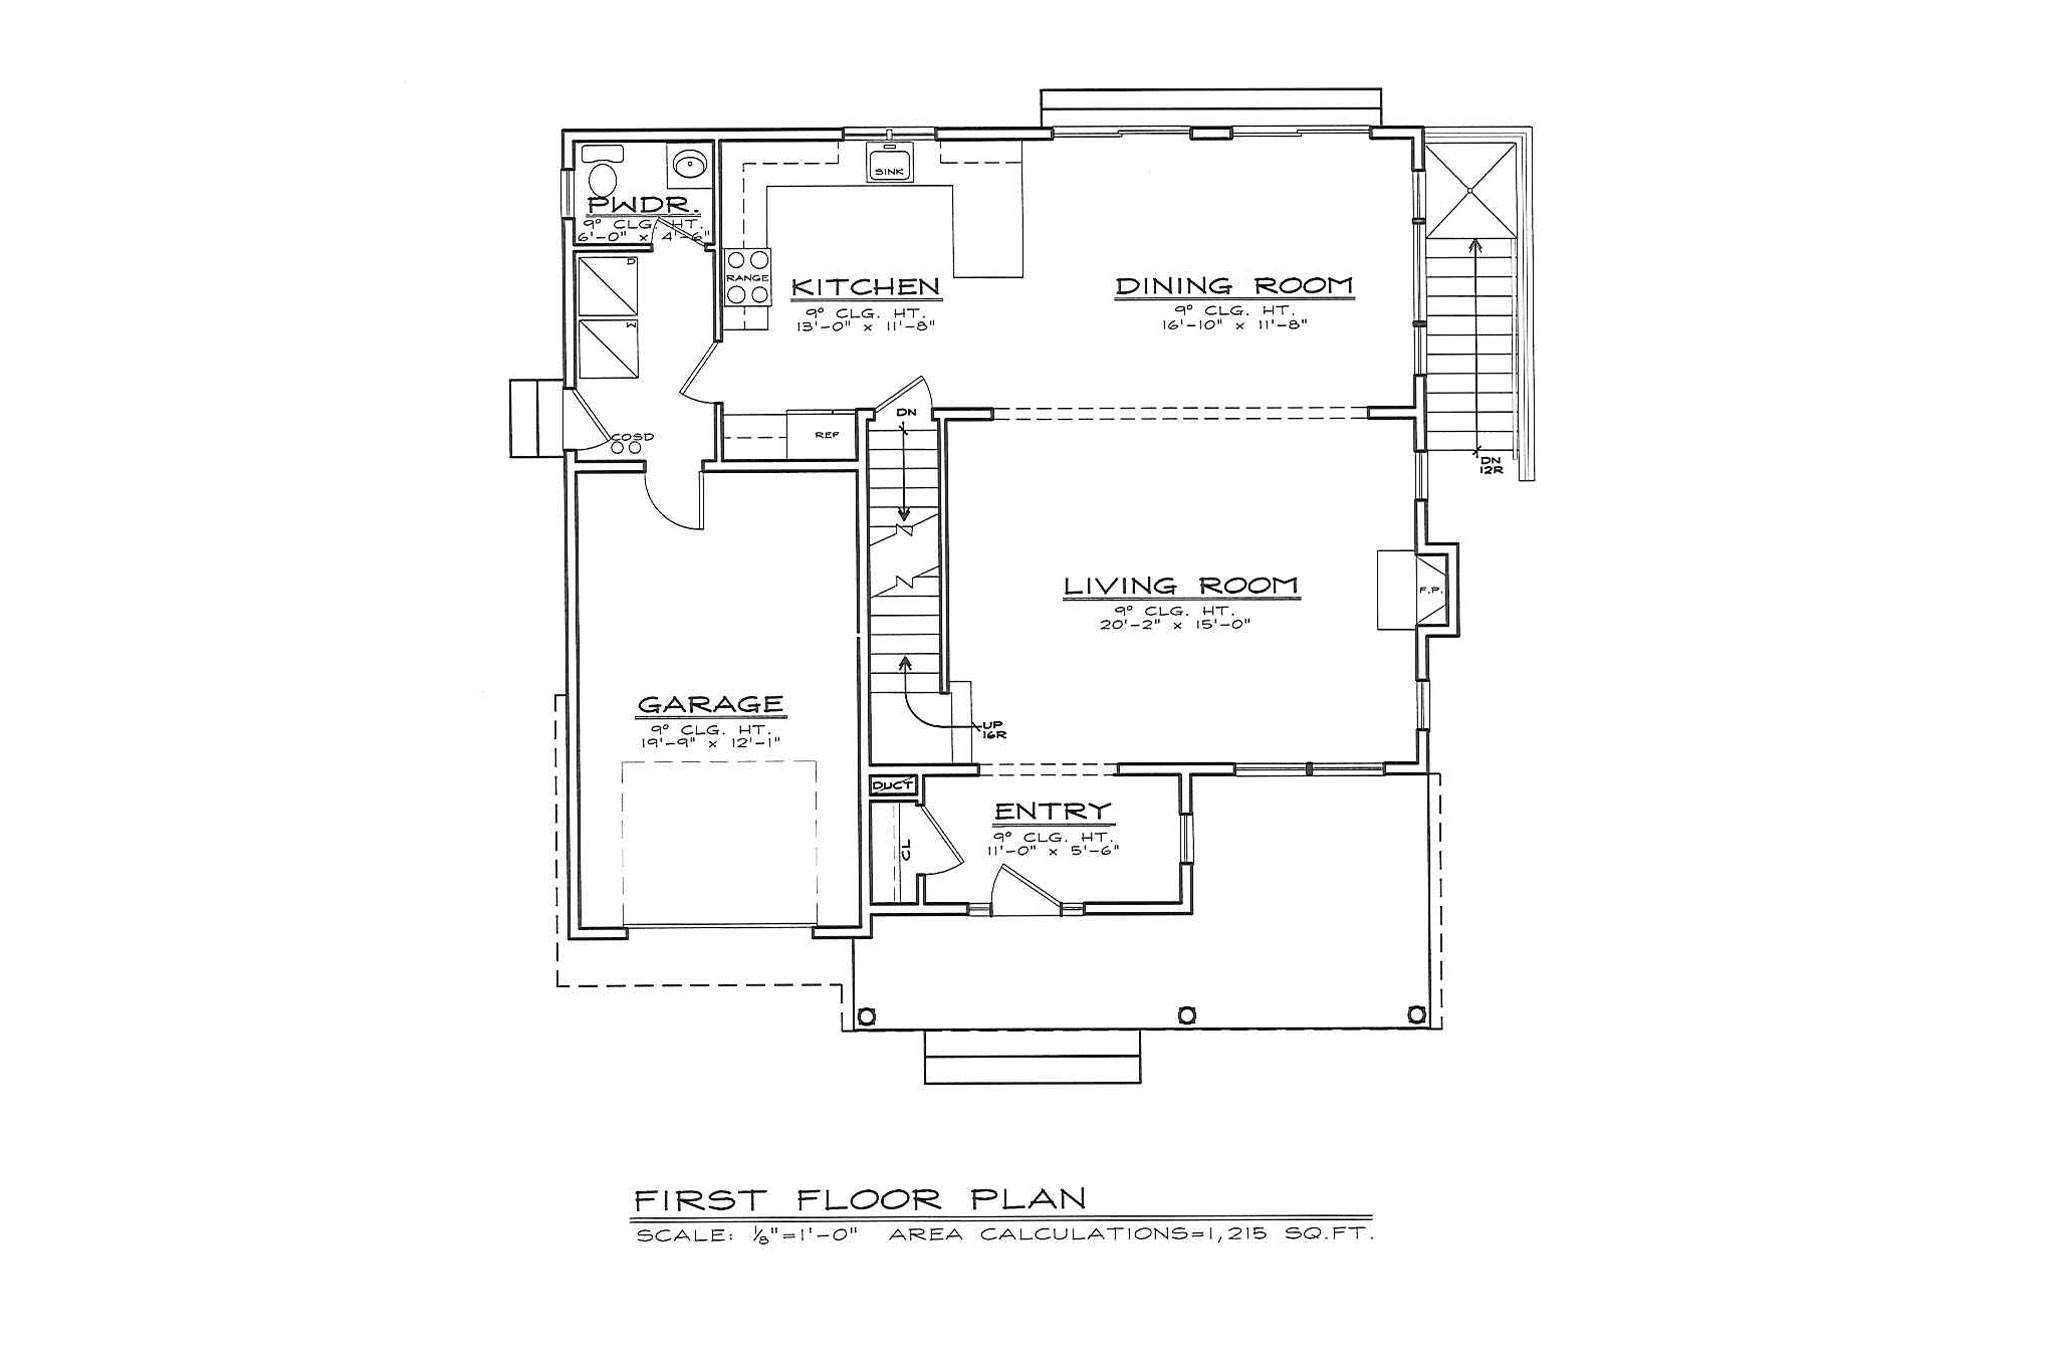 Single Family Homes for Sale at East Hampton - New Construction East Hampton, East Hampton Town, NY 11937